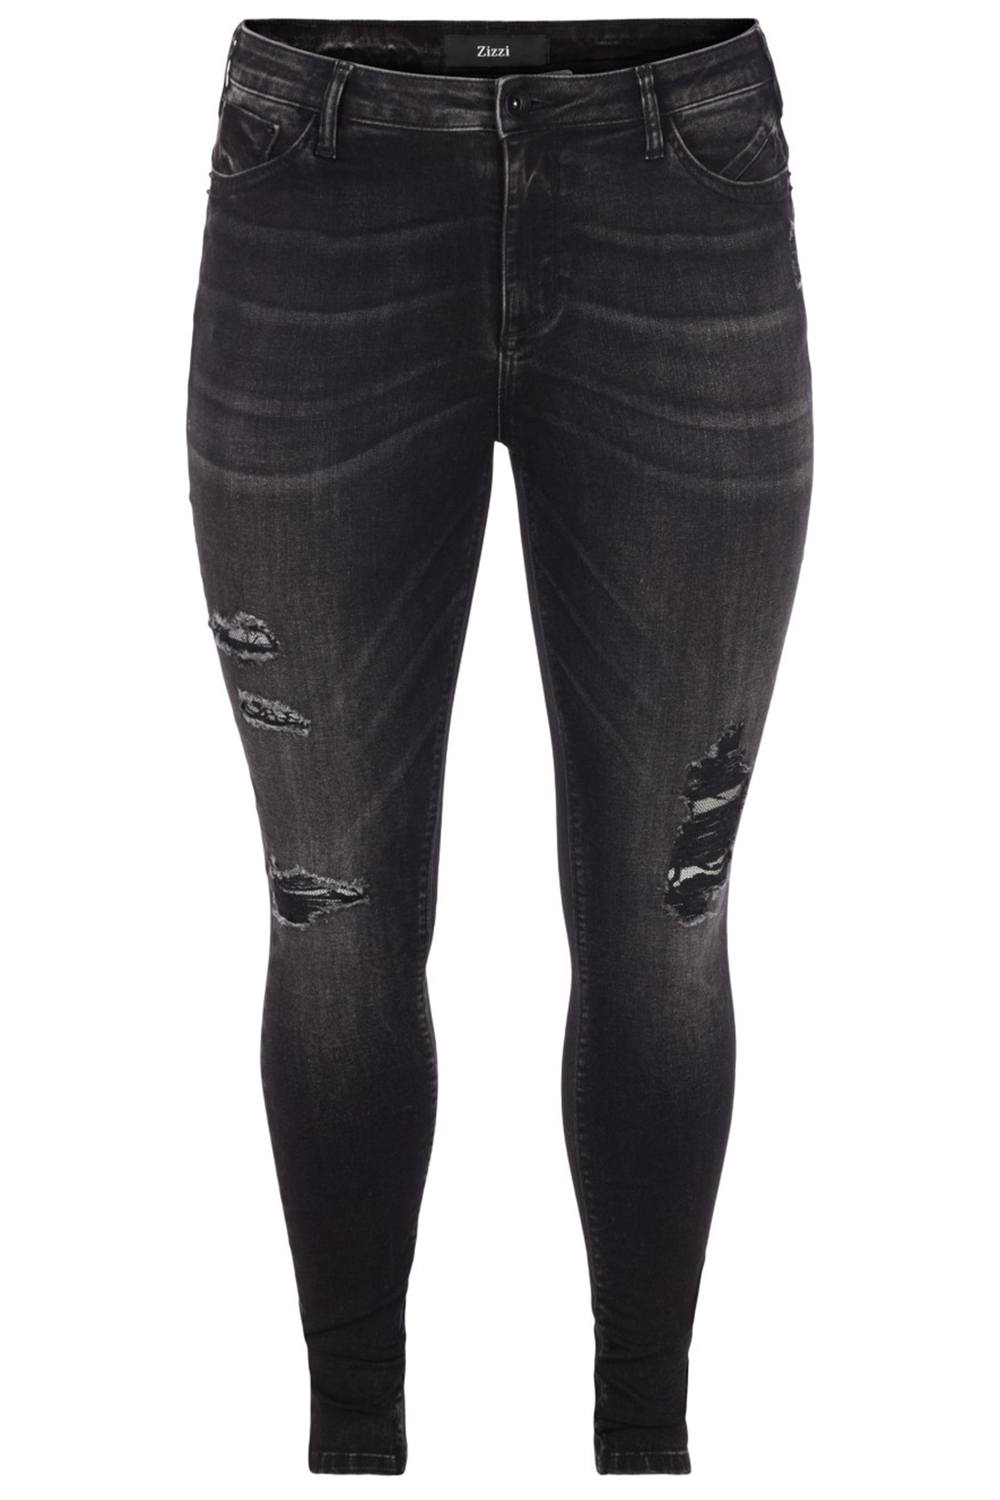 Jeans Zizzi AMY destroyed look